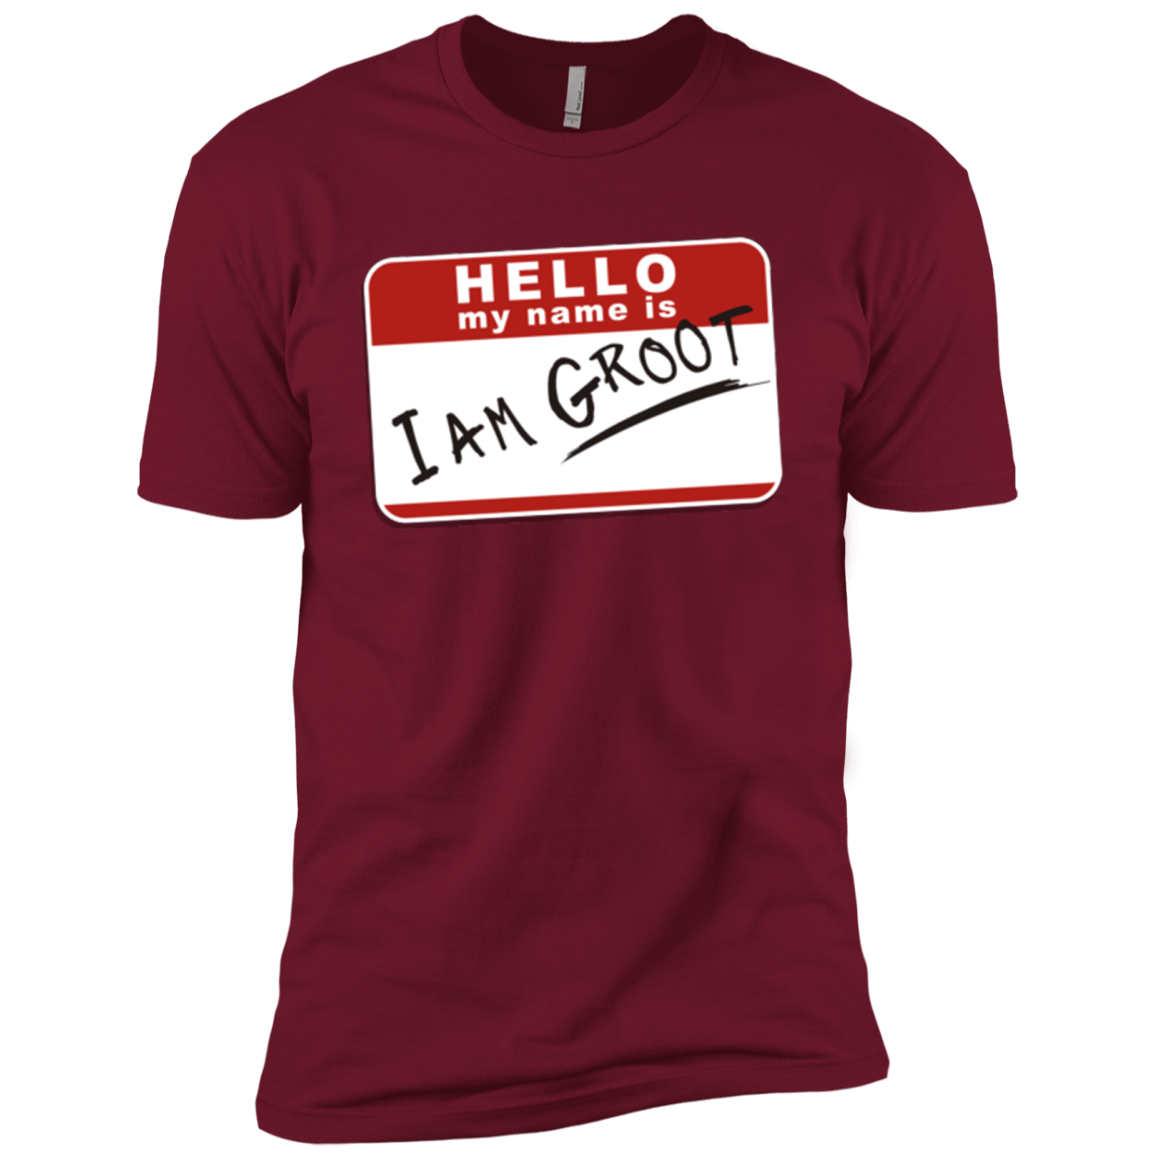 T-Shirts Cardinal / X-Small I am Groot Men's Premium T-Shirt